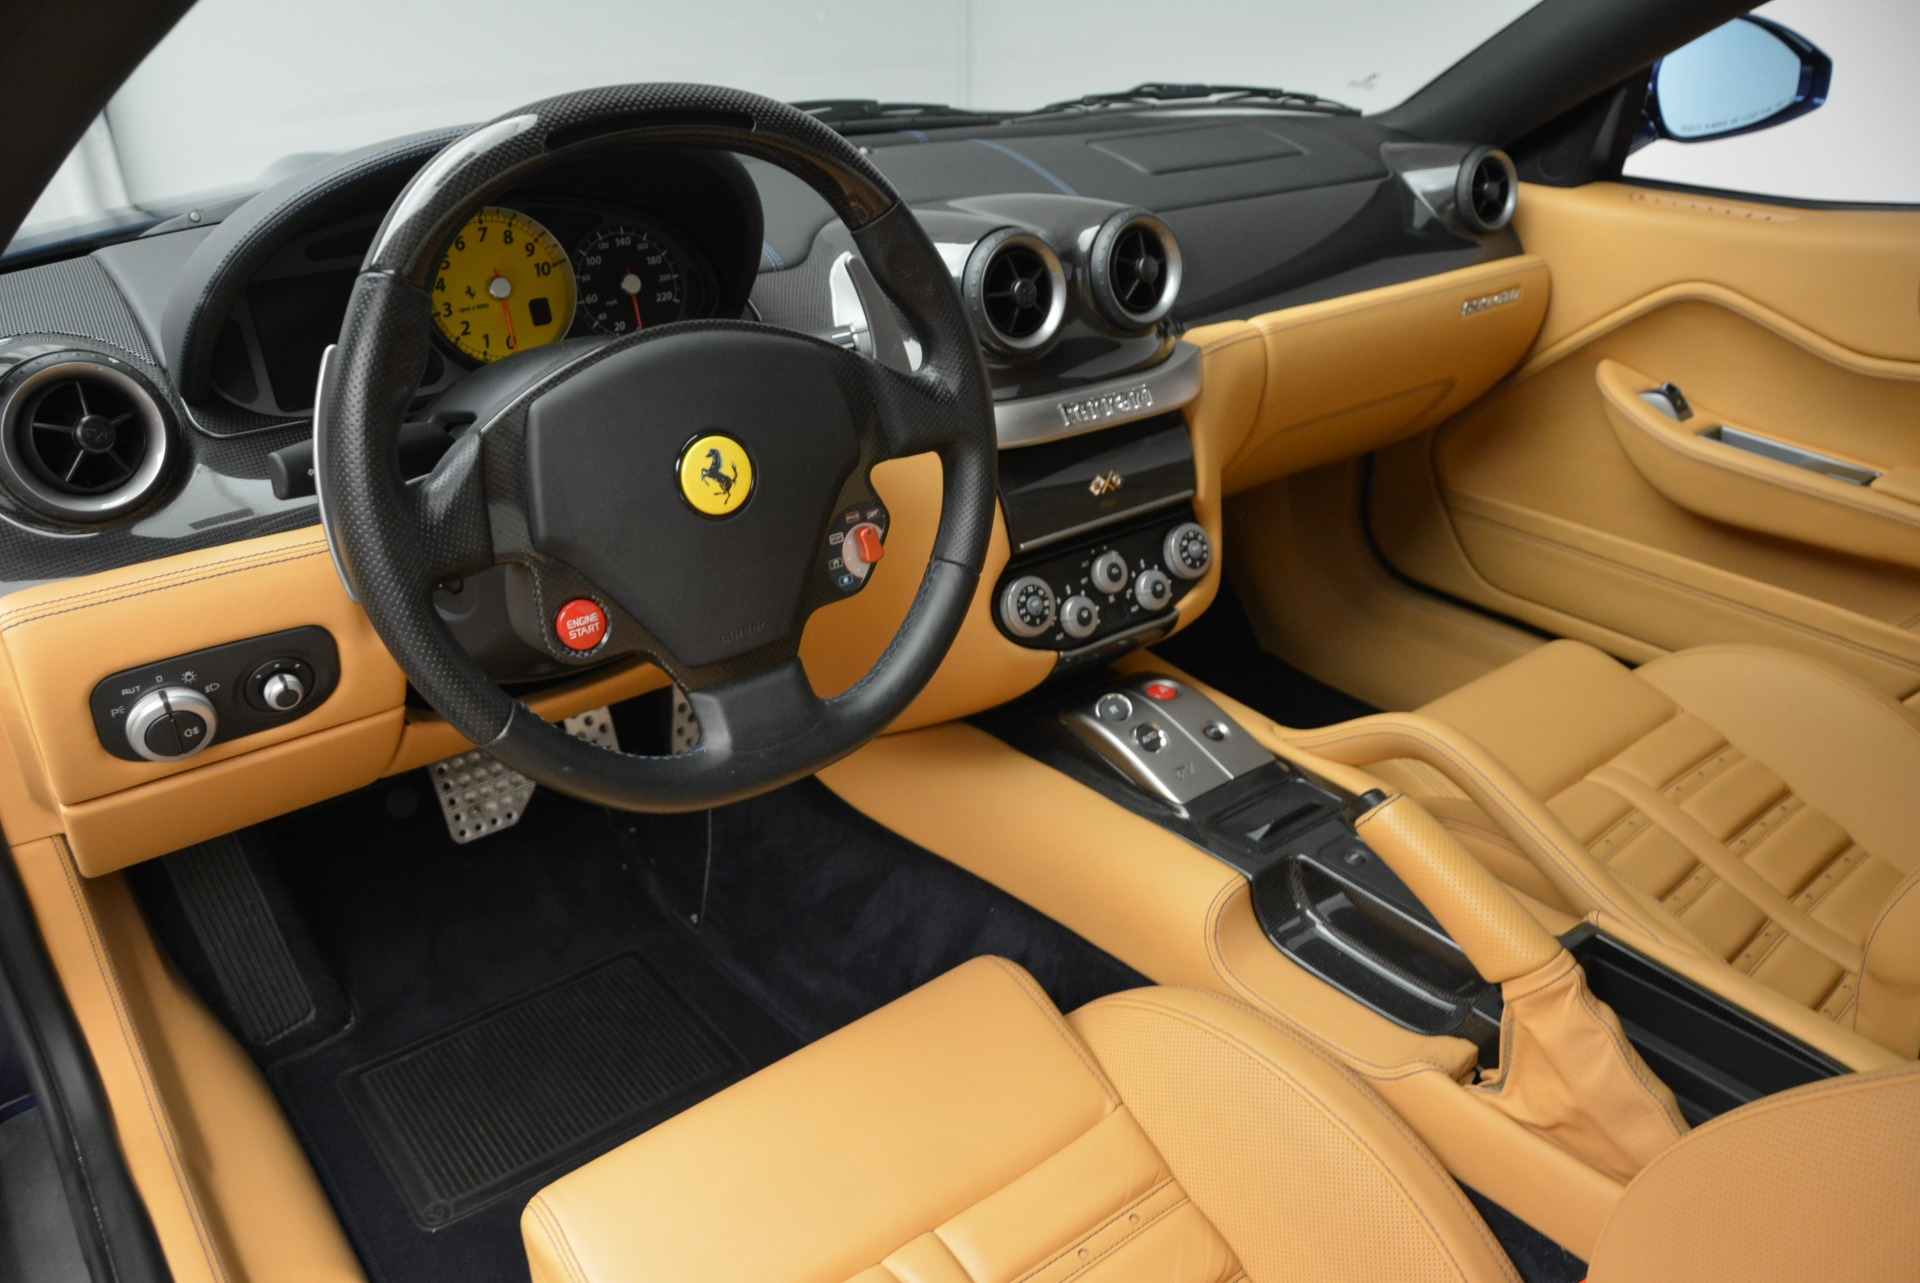 Used 2007 Ferrari 599 GTB Fiorano GTB Fiorano F1 For Sale In Greenwich, CT 1893_p13